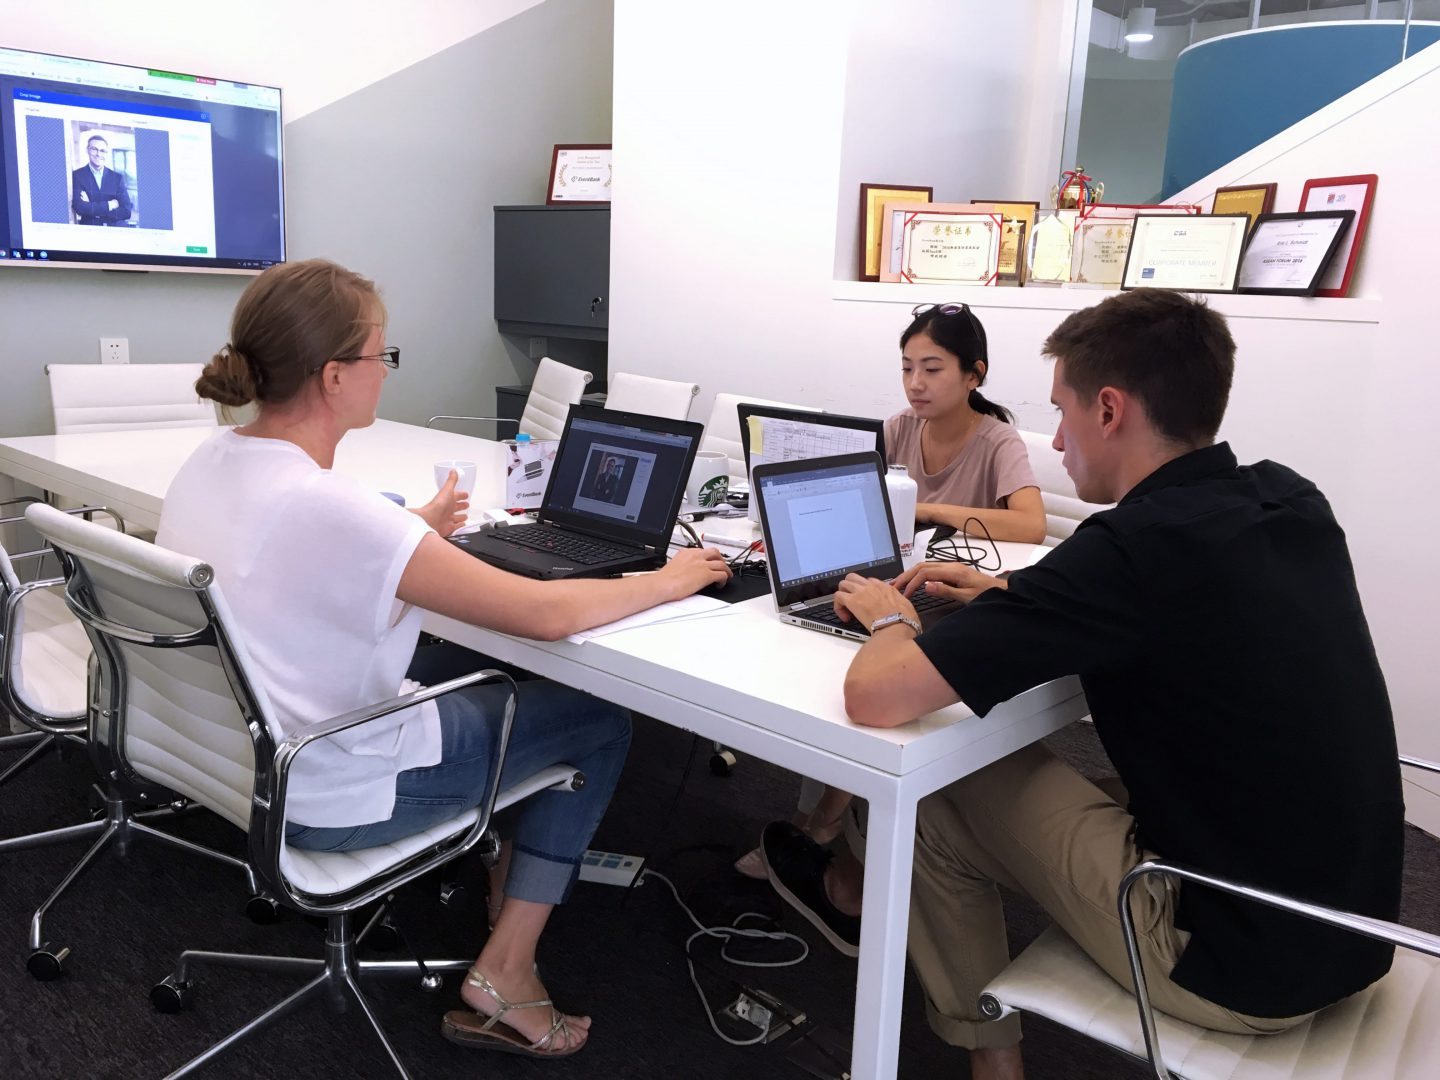 ></p> <p>Brands are able to use events marketing in two key ways, these are online and offline.</p> <h3>Online</h3> <p>Hosting online events gives the chance to blend face to face interactions with today's modern technologies. They are particularity useful when connecting with less active target audiences, connecting with non-local audiences and when saving on costs.</p> <p>Online events are made up of 3 main types, webinars, live streaming and virtual.</p> <h3>Virtual Events</h3> <p>Combine education, networking, and interactivity to give a lifelike experience online. Participants even have virtual booths to meet staff, pick up documents and learn more about your brand.</p> <h3>Live Streaming</h3> <p>This is a very simple event method to execute. The event can be held and live-streamed to a digital audience by using a phone or webcam. This means the audience doesn't physically need to be present at the event. It can also be recorded so attendees can watch at a time and date which suits them, this opens the opportunity for a large audience to be exposed to your brand.</p> <h3>Webinars</h3> <p>These are available either in real-time or on-demand. There are many different platforms which they can take place through. They provide the opportunity to receive information, have discussions and answer questions. Moreover, this can create a strong connection between your brand and the audience.</p> <h3>Offline</h3> <p>This is the holding of events in person rather than online. Although they are often more costly and time-consuming to run the real life interaction is irreplaceable with technology. From immersing your audience in a new experience, giving away <a href=